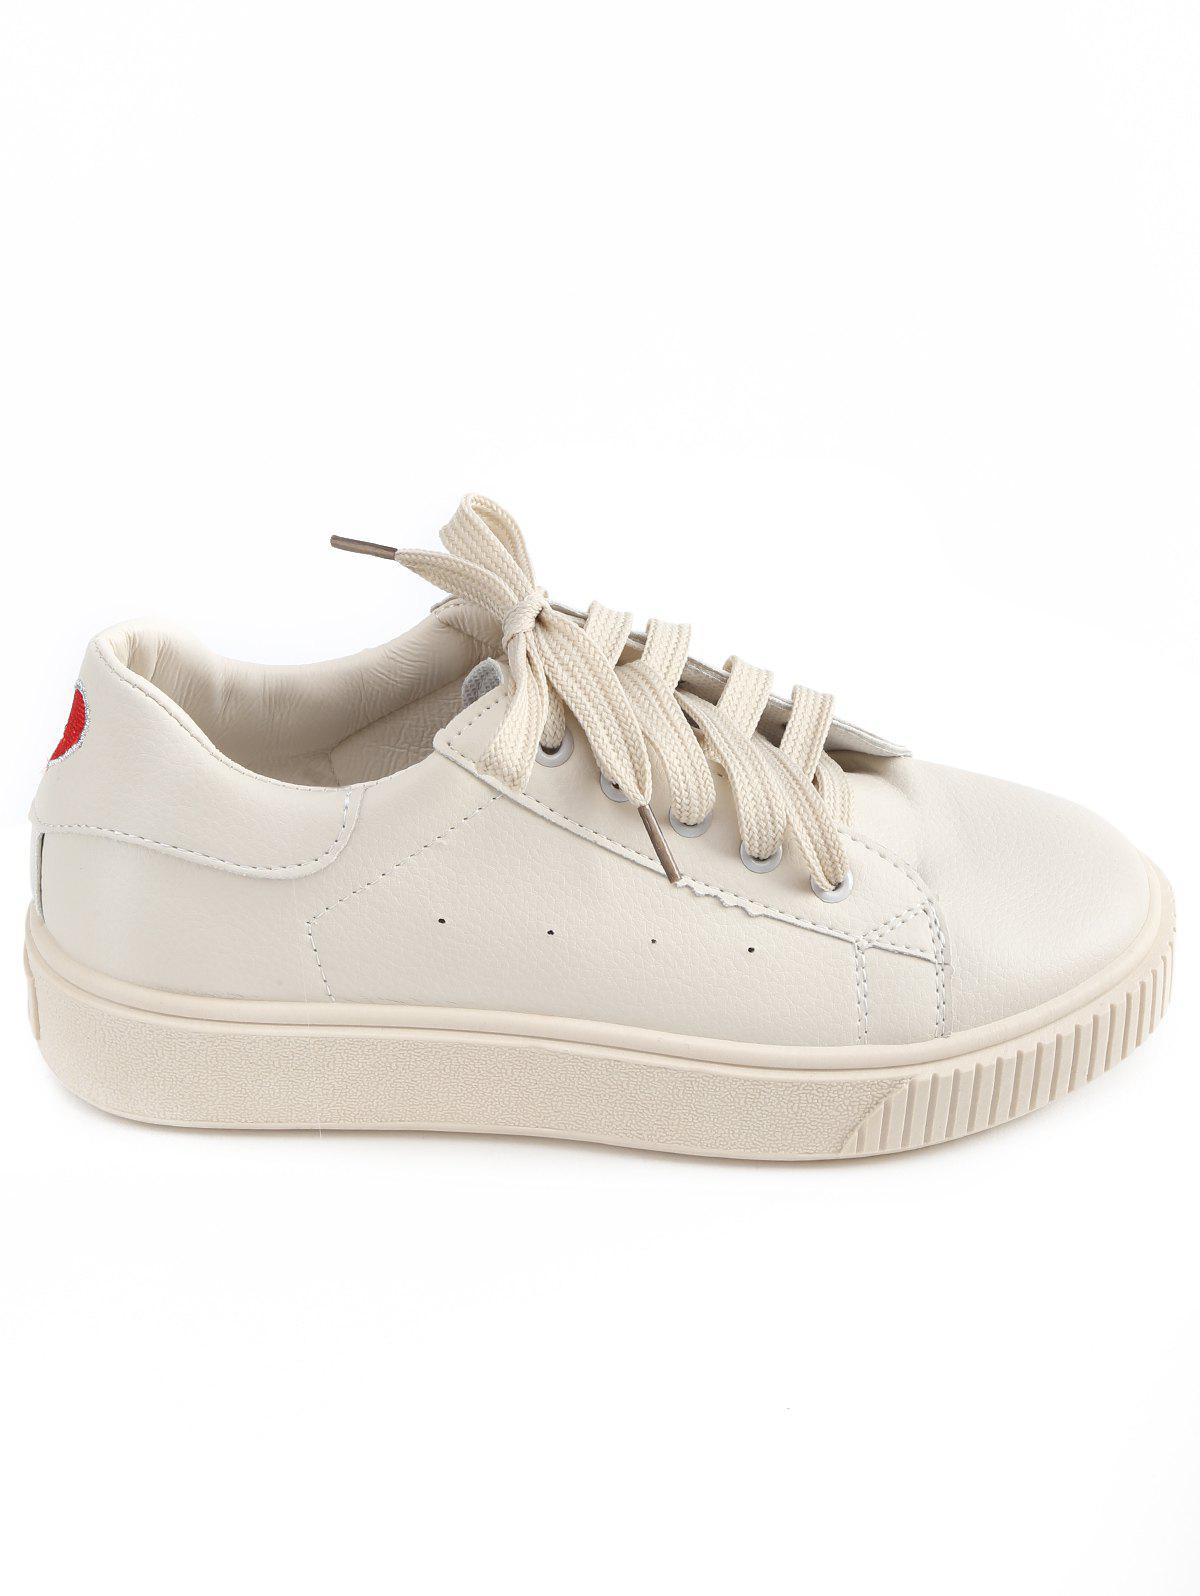 Chic Tie Up Low Heel PU Leather Sneakers